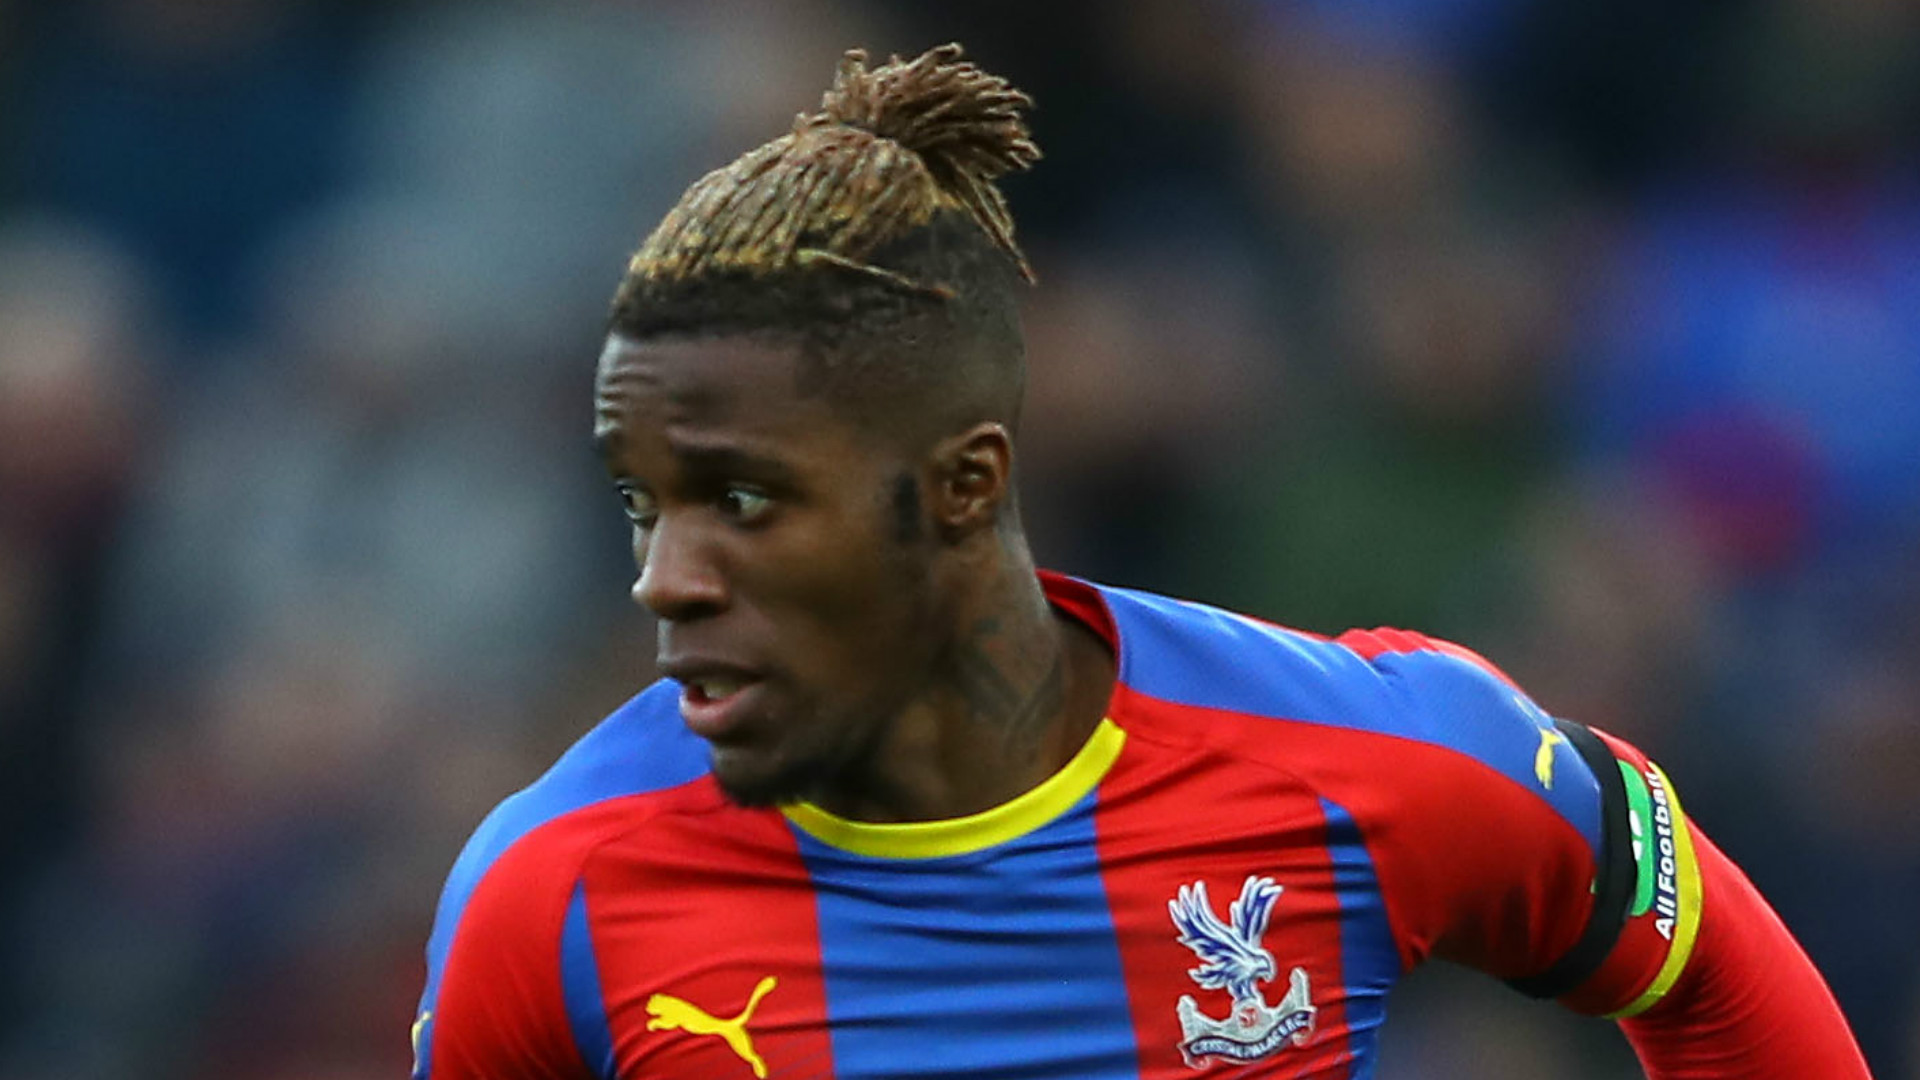 'I'm just expecting Zaha back' - Hodgson denies knowledge of Crystal Palace star exit request